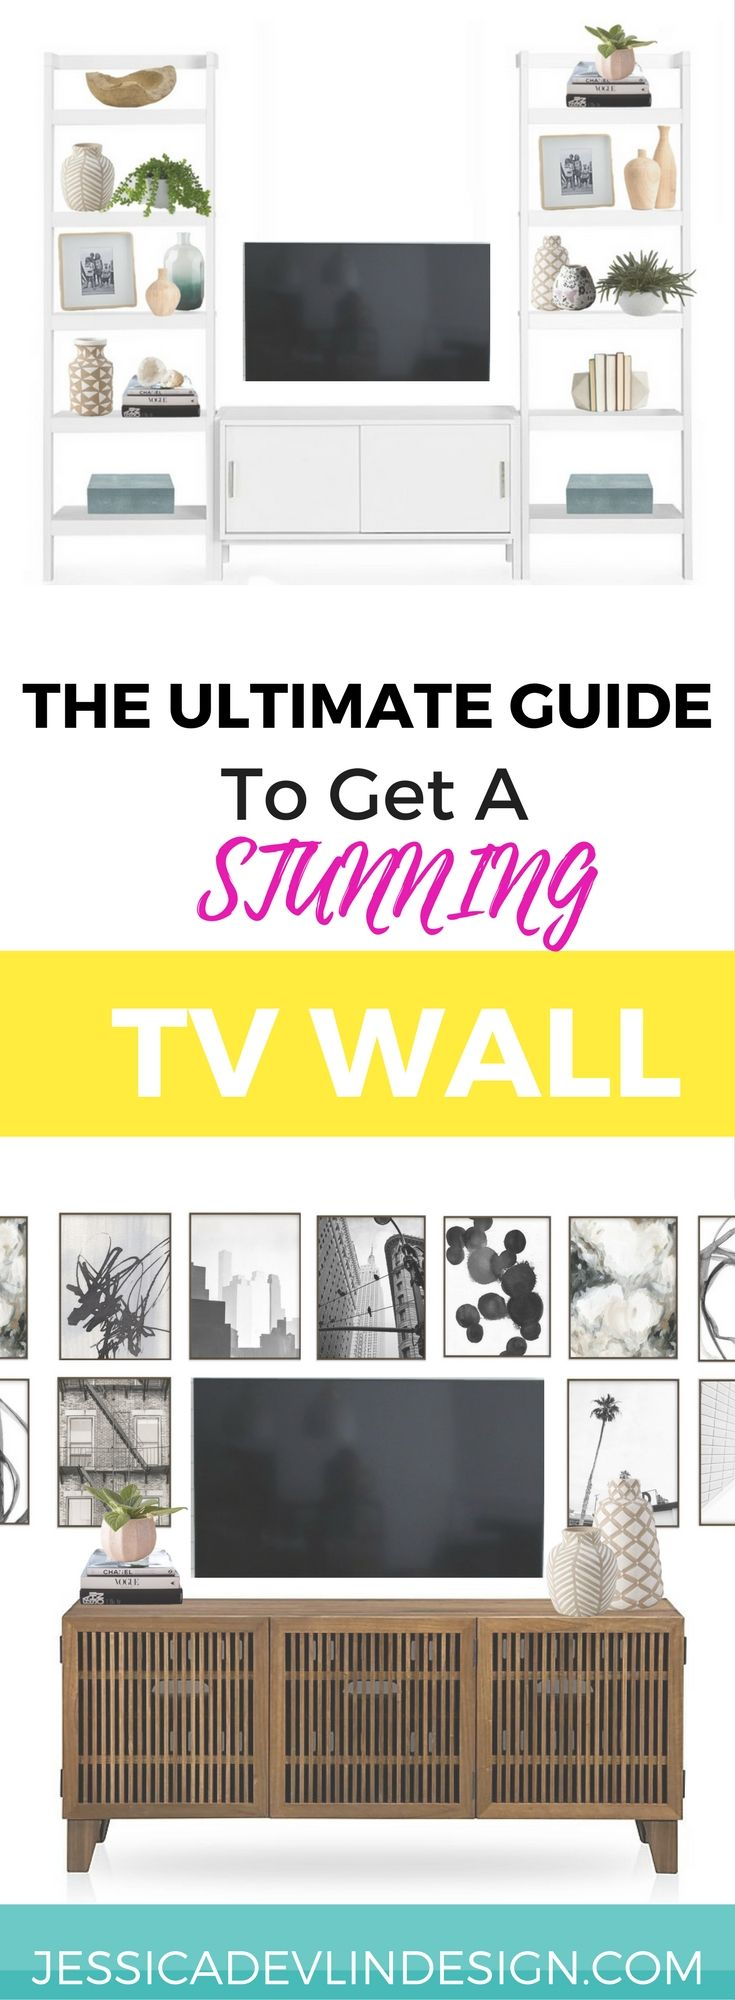 How to decorate TV wall, Gallyer Wall, built-ins around TV.